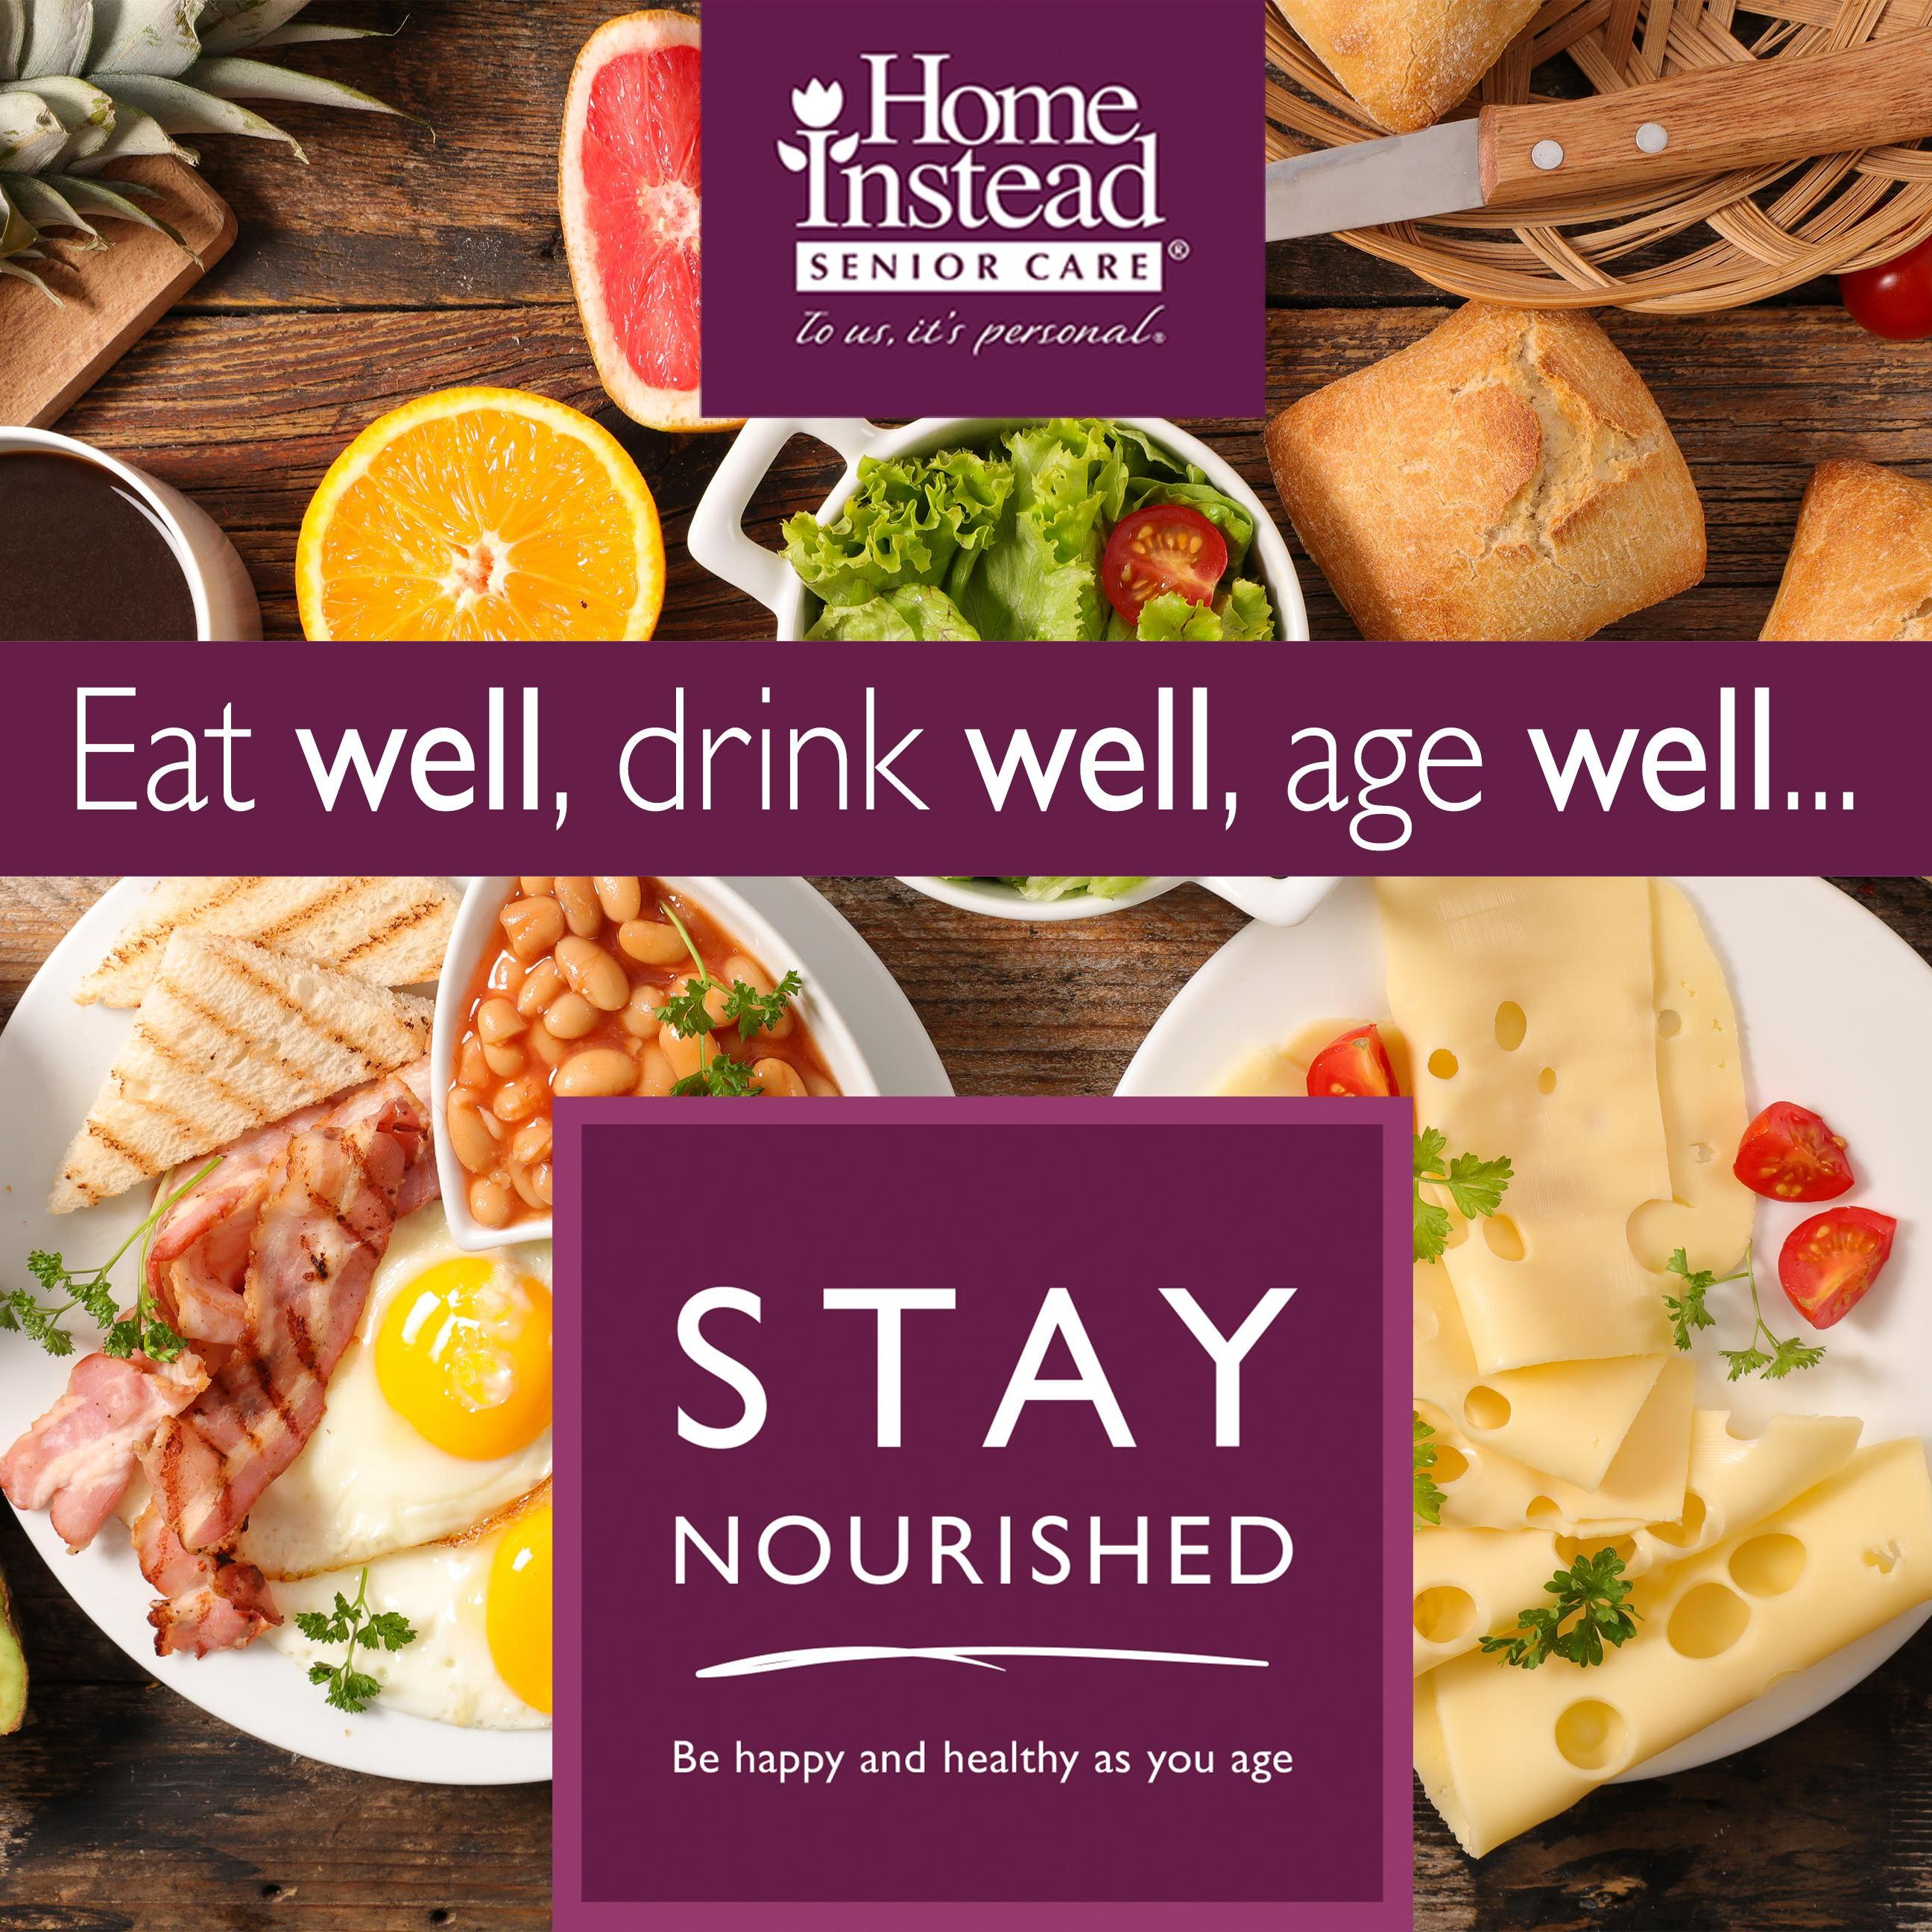 Stay Nourished Home Instead eat well